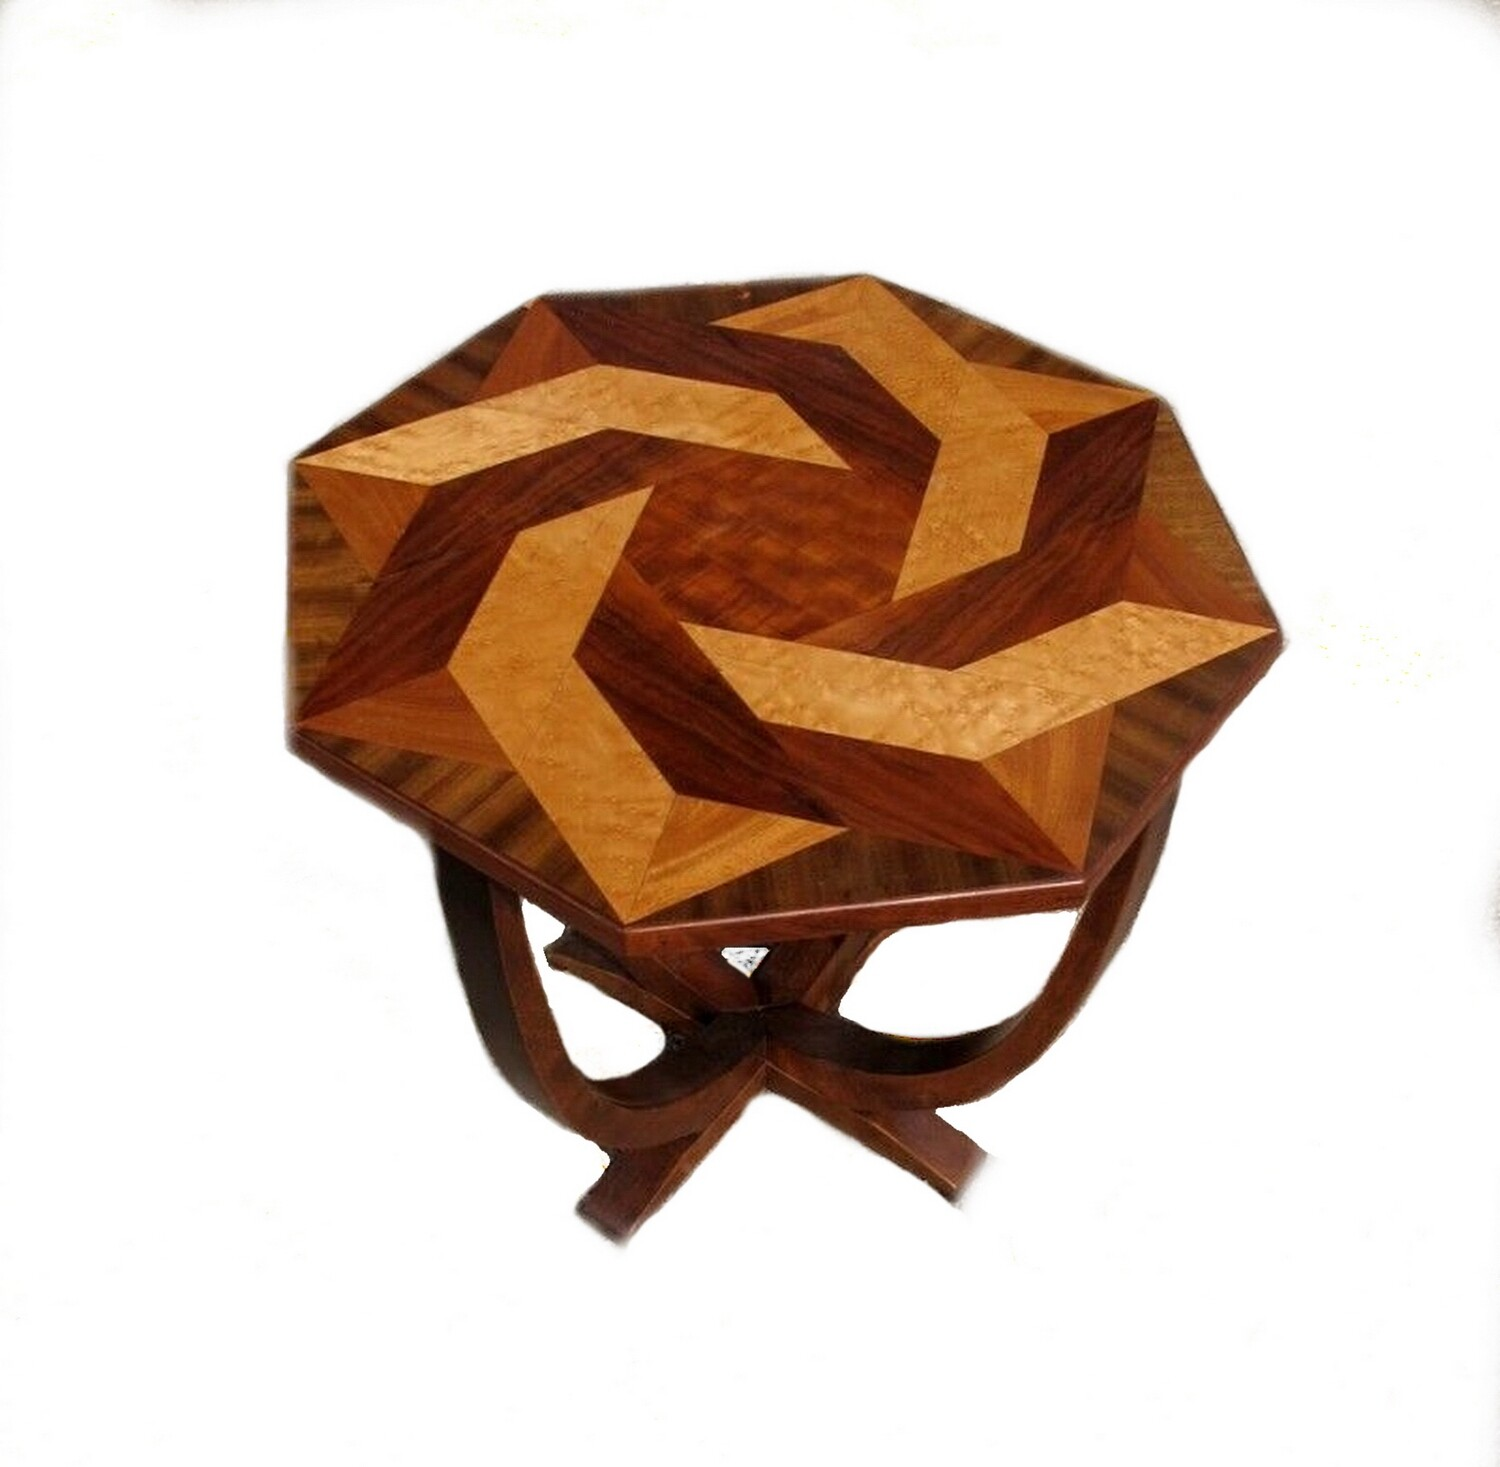 Art Deco 1920s Exotic Wood Occasional Table Maple, Walnut and Mahogany